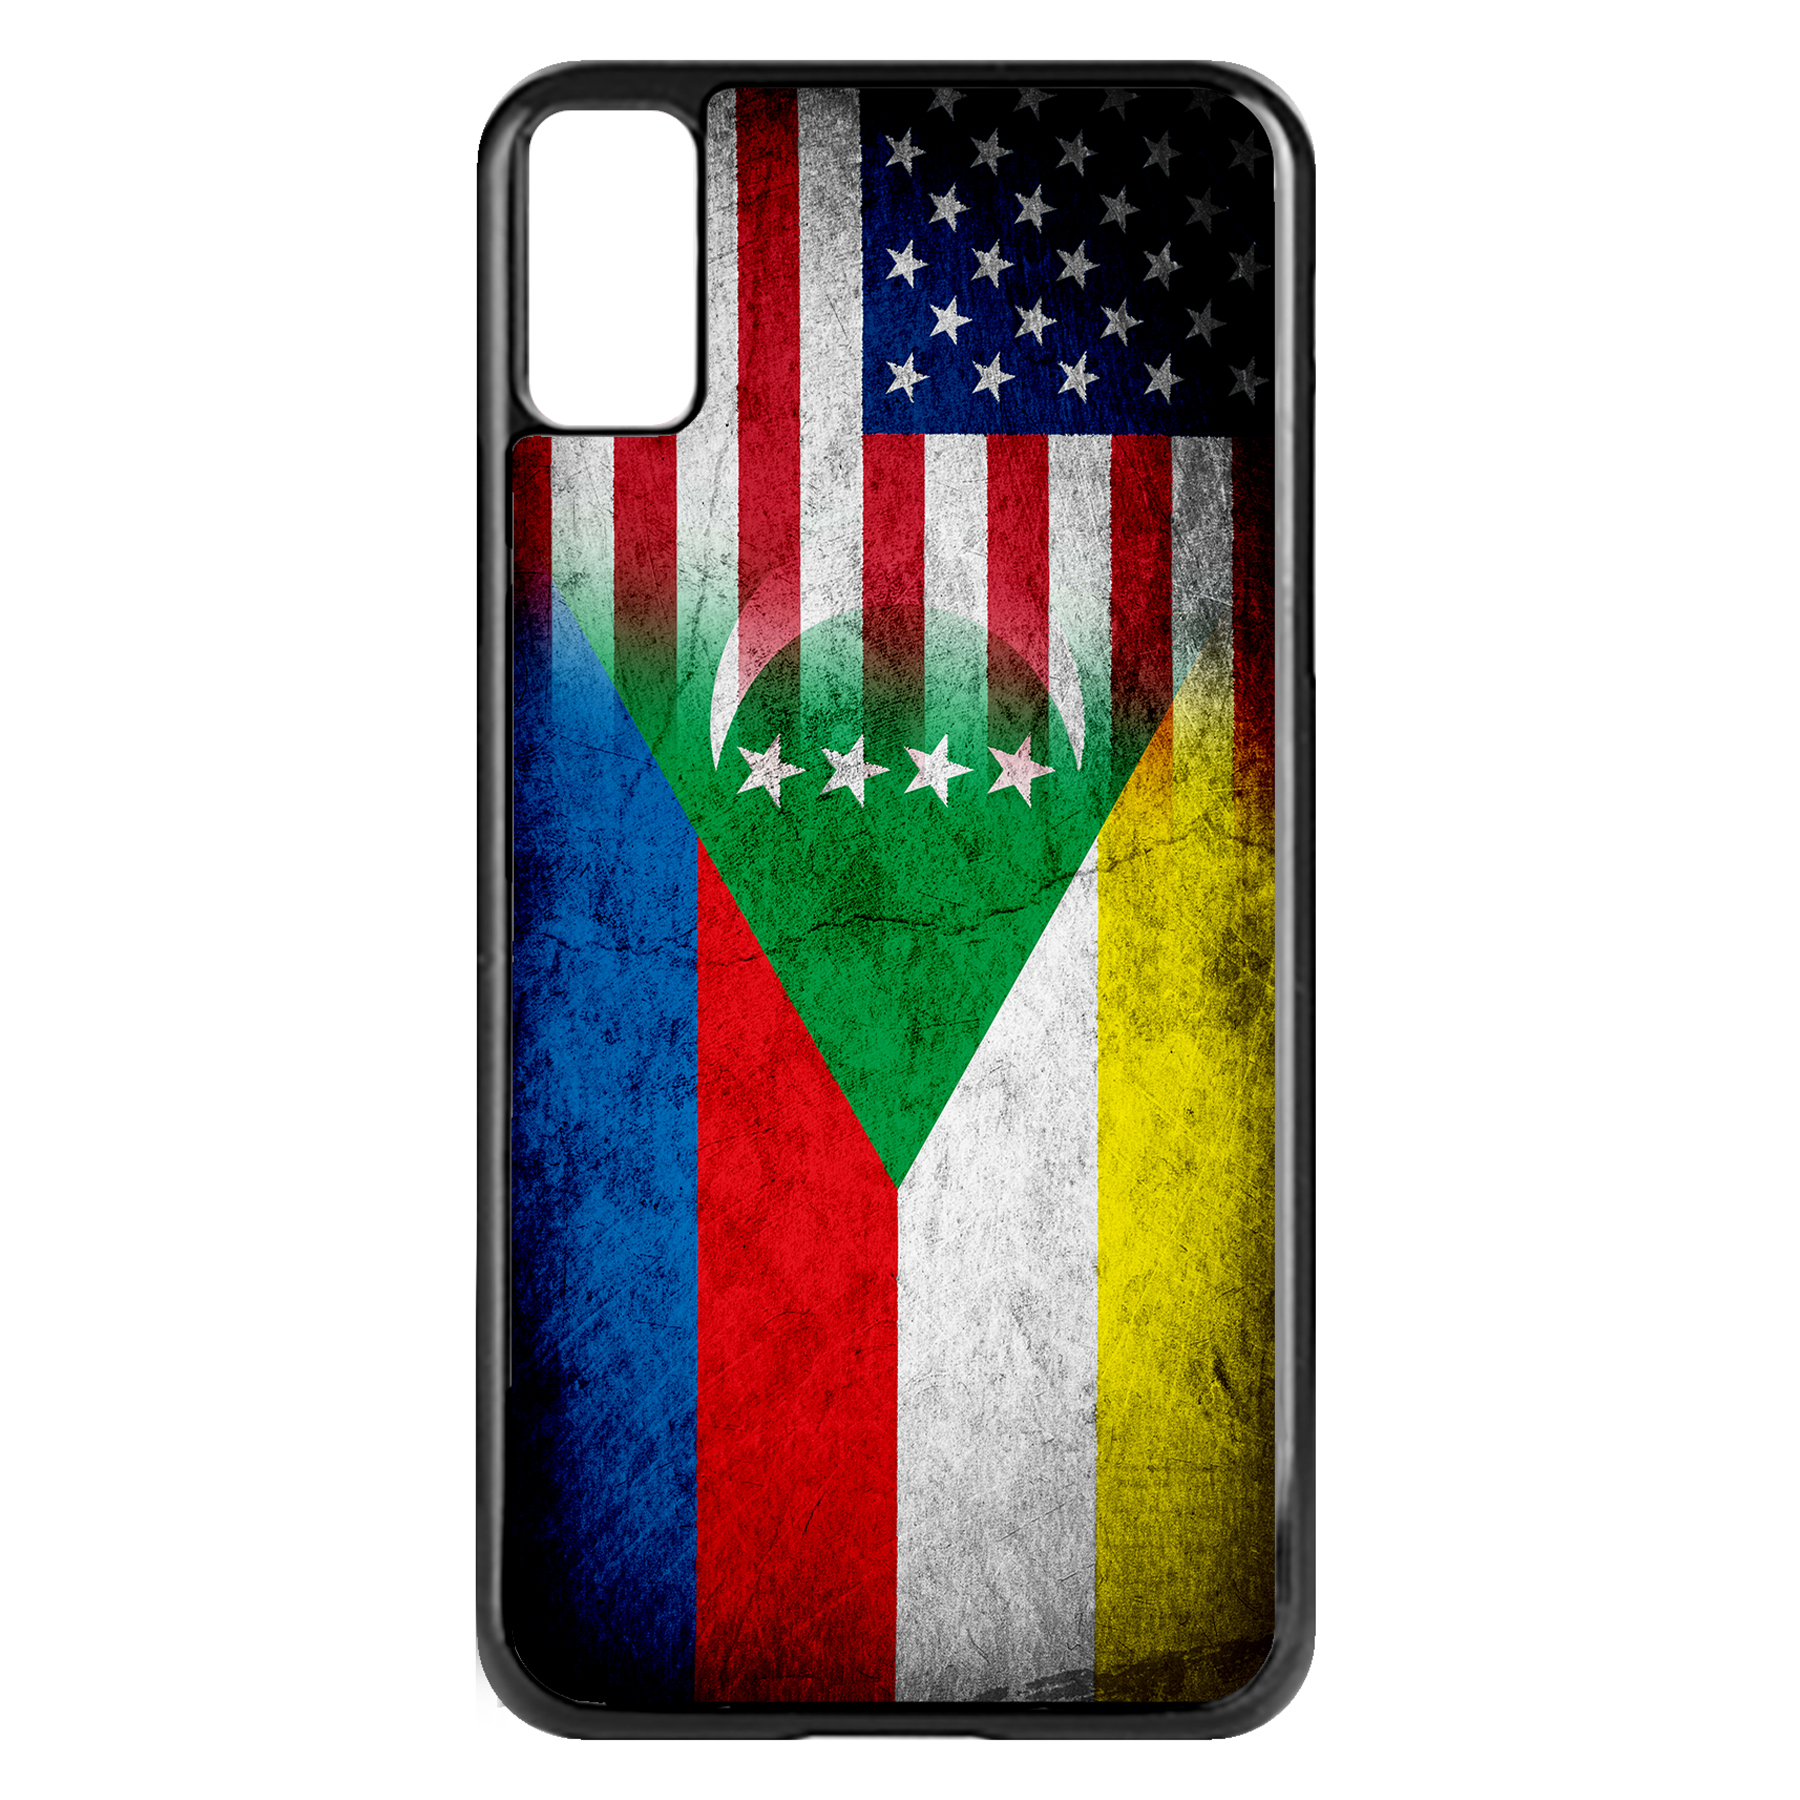 Apple-iPhone-Case-with-Flag-of-Comoros-Comorian-Many-Design-Options thumbnail 79